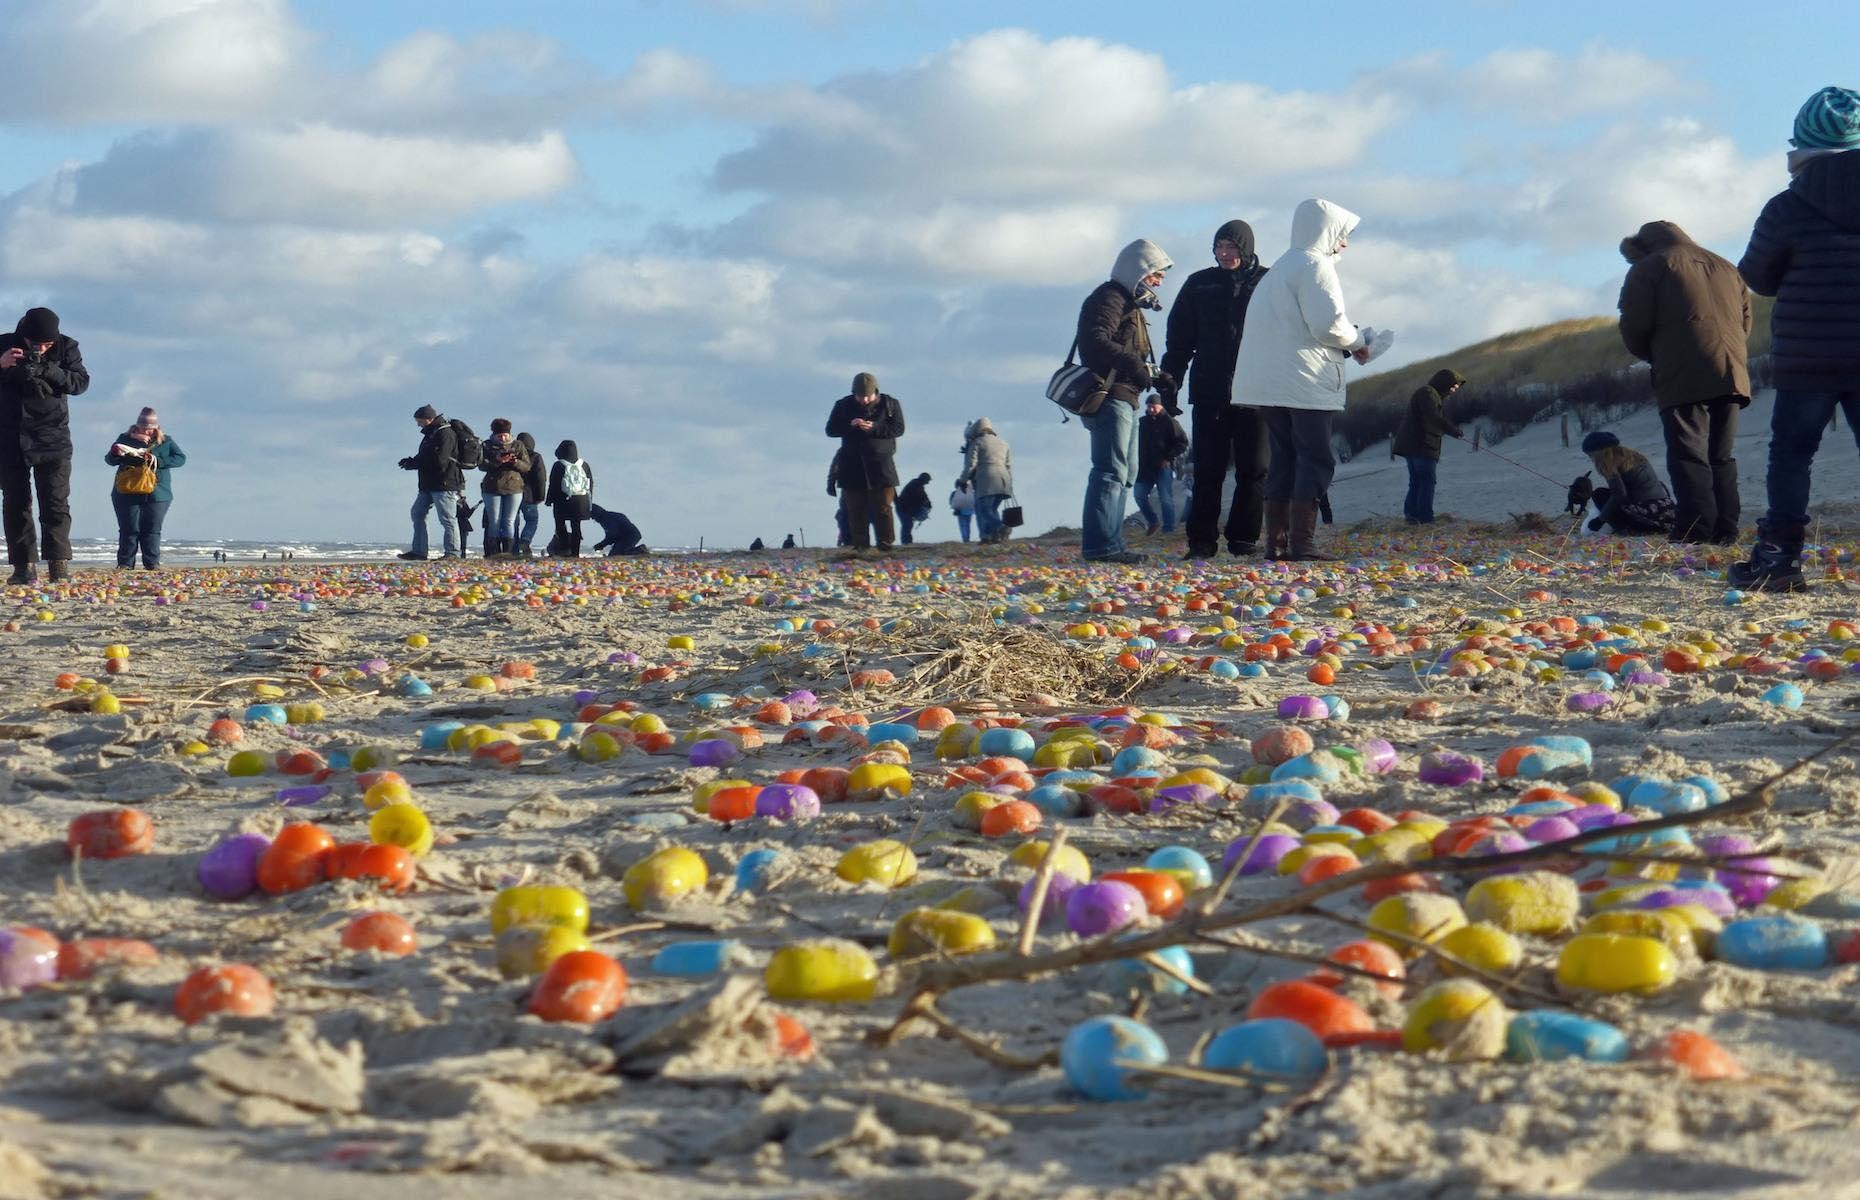 Slide 4 of 33: Children on Germany's North Sea island Langeoog thought the Easter bunny had come early in January 2017 as thousands of colorful plastic eggs floated onto its sandy beaches. The eggs, which contained little toys, had washed ashore from a Danish freight container that had lost its contents in stormy weather. Locals, including children and tourists, congregated to help with the clear up.